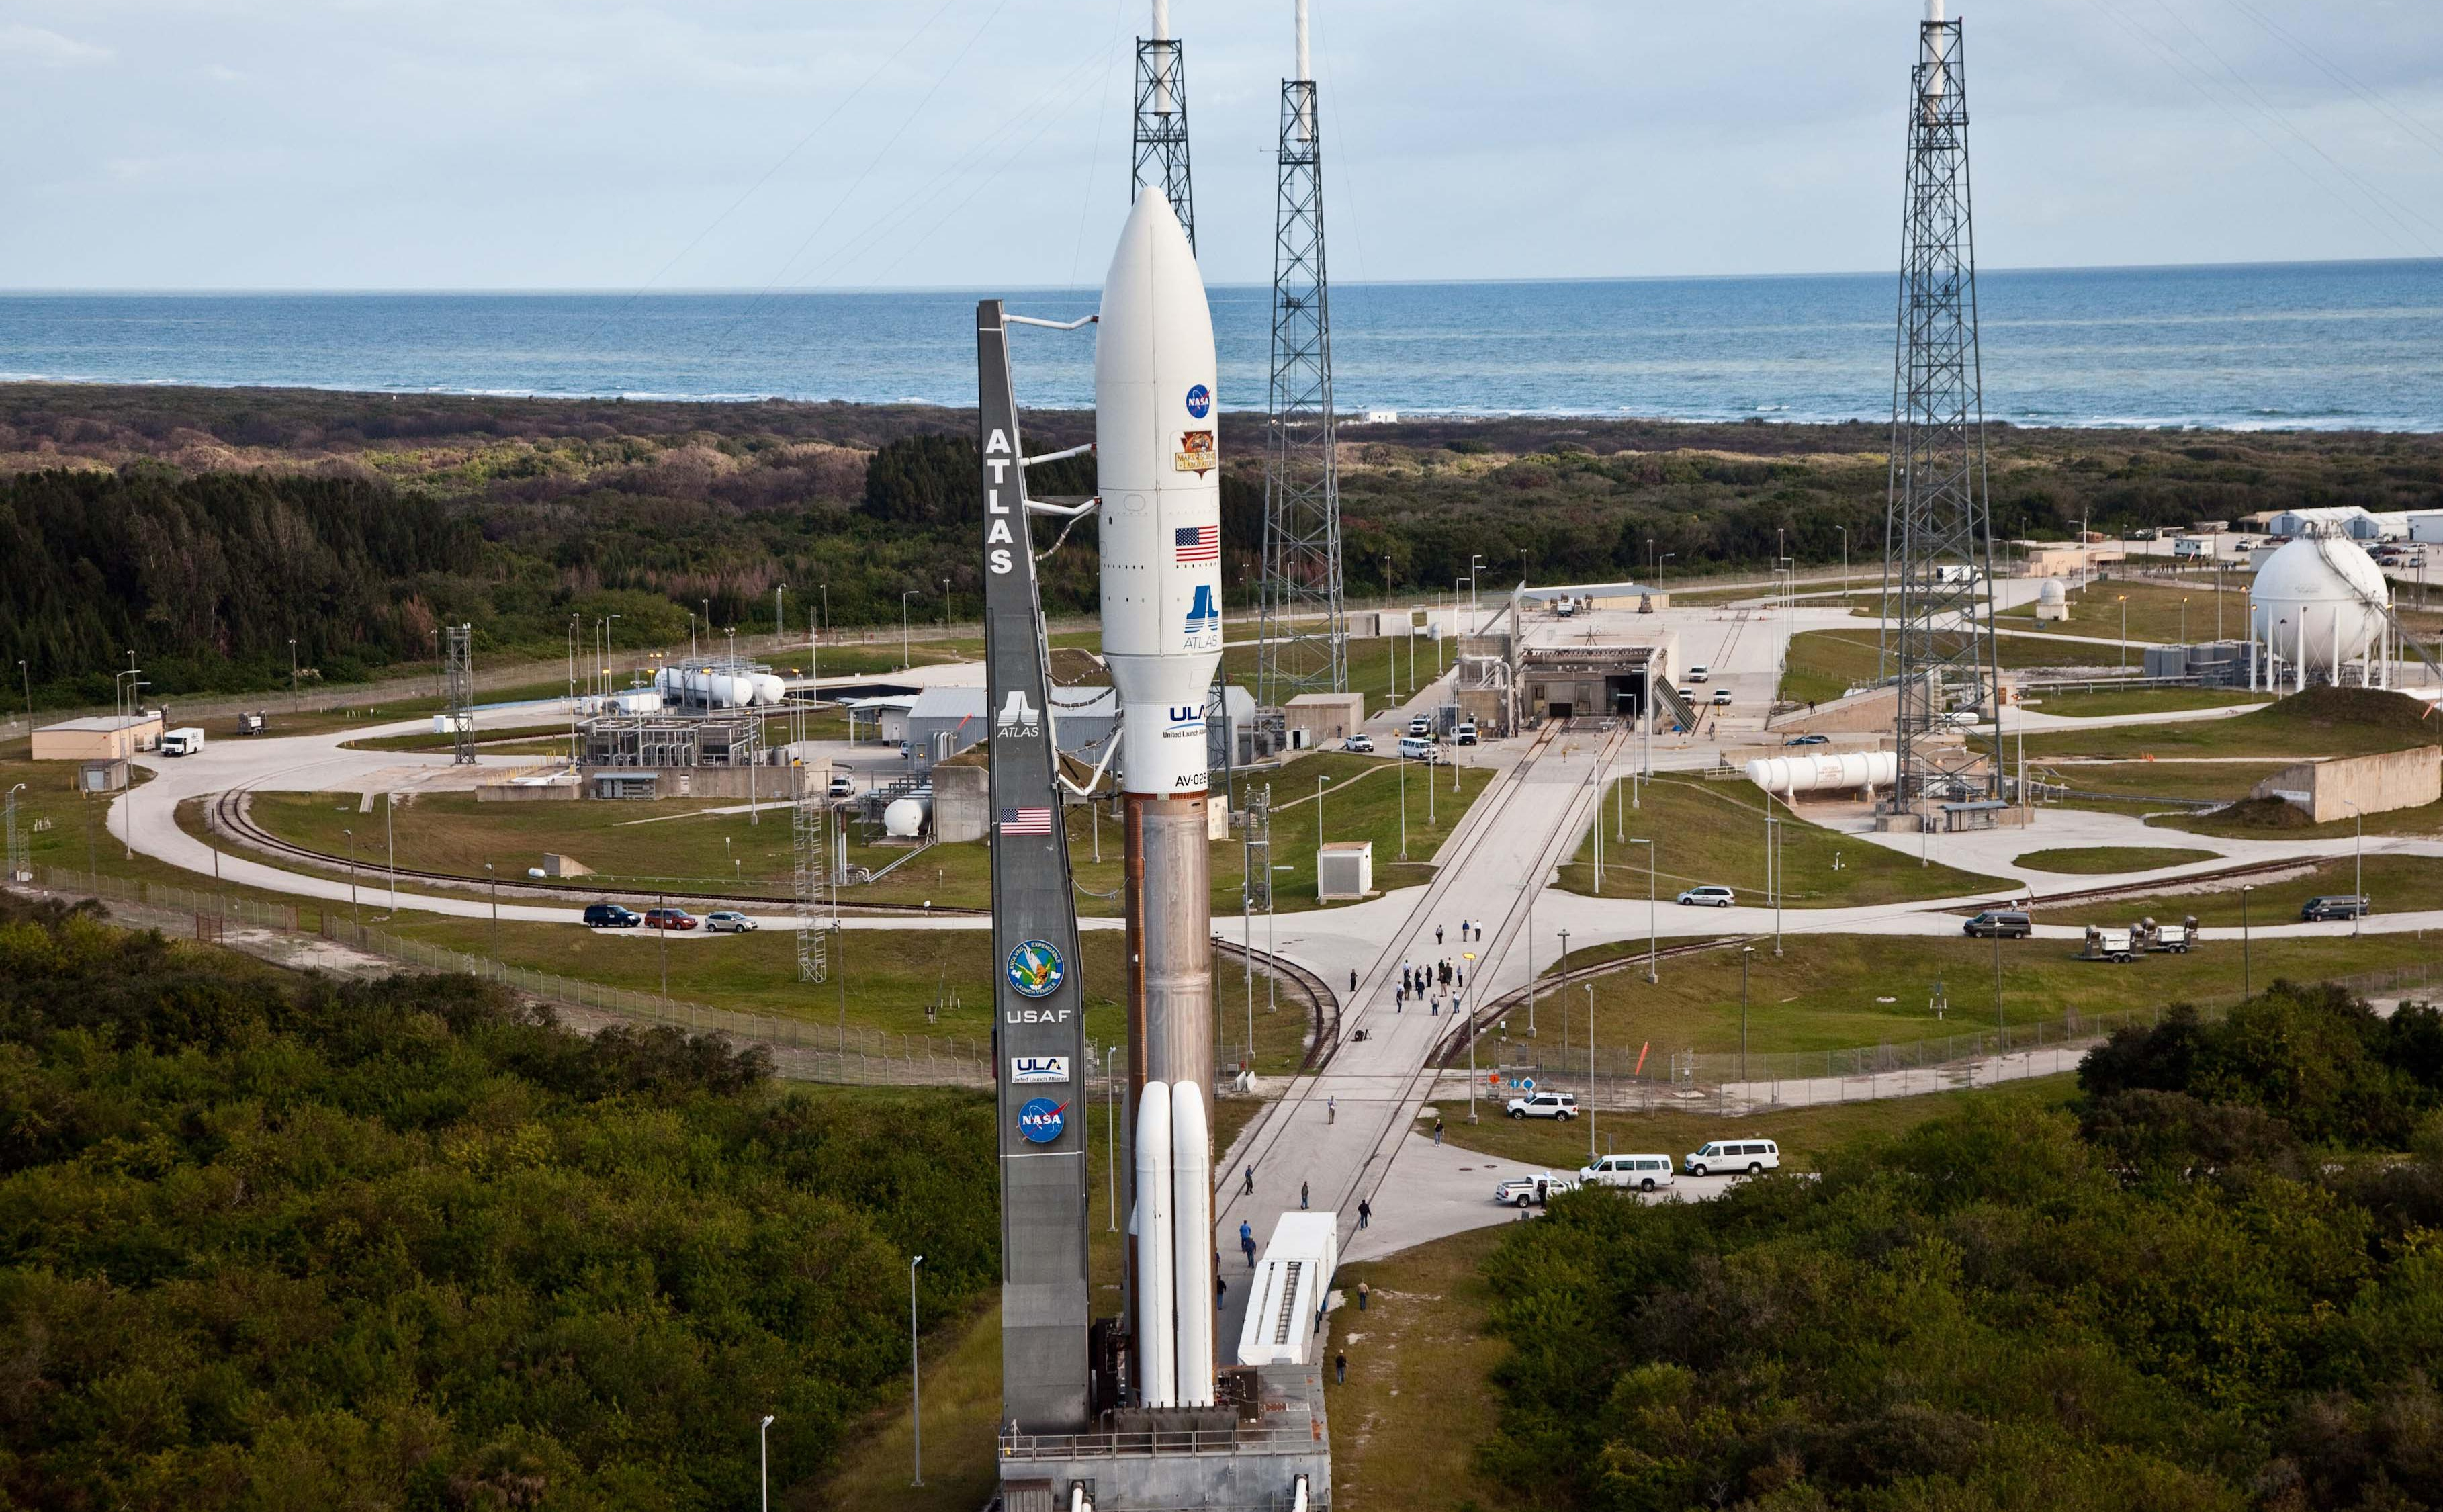 A United Launch Alliance Atlas V rocket with NASA's Mars Science Lab (MSL) rover Curiosity rolls out to its Space Launch Complex-41 launch pad arriving at 8:40 a.m. EST today.